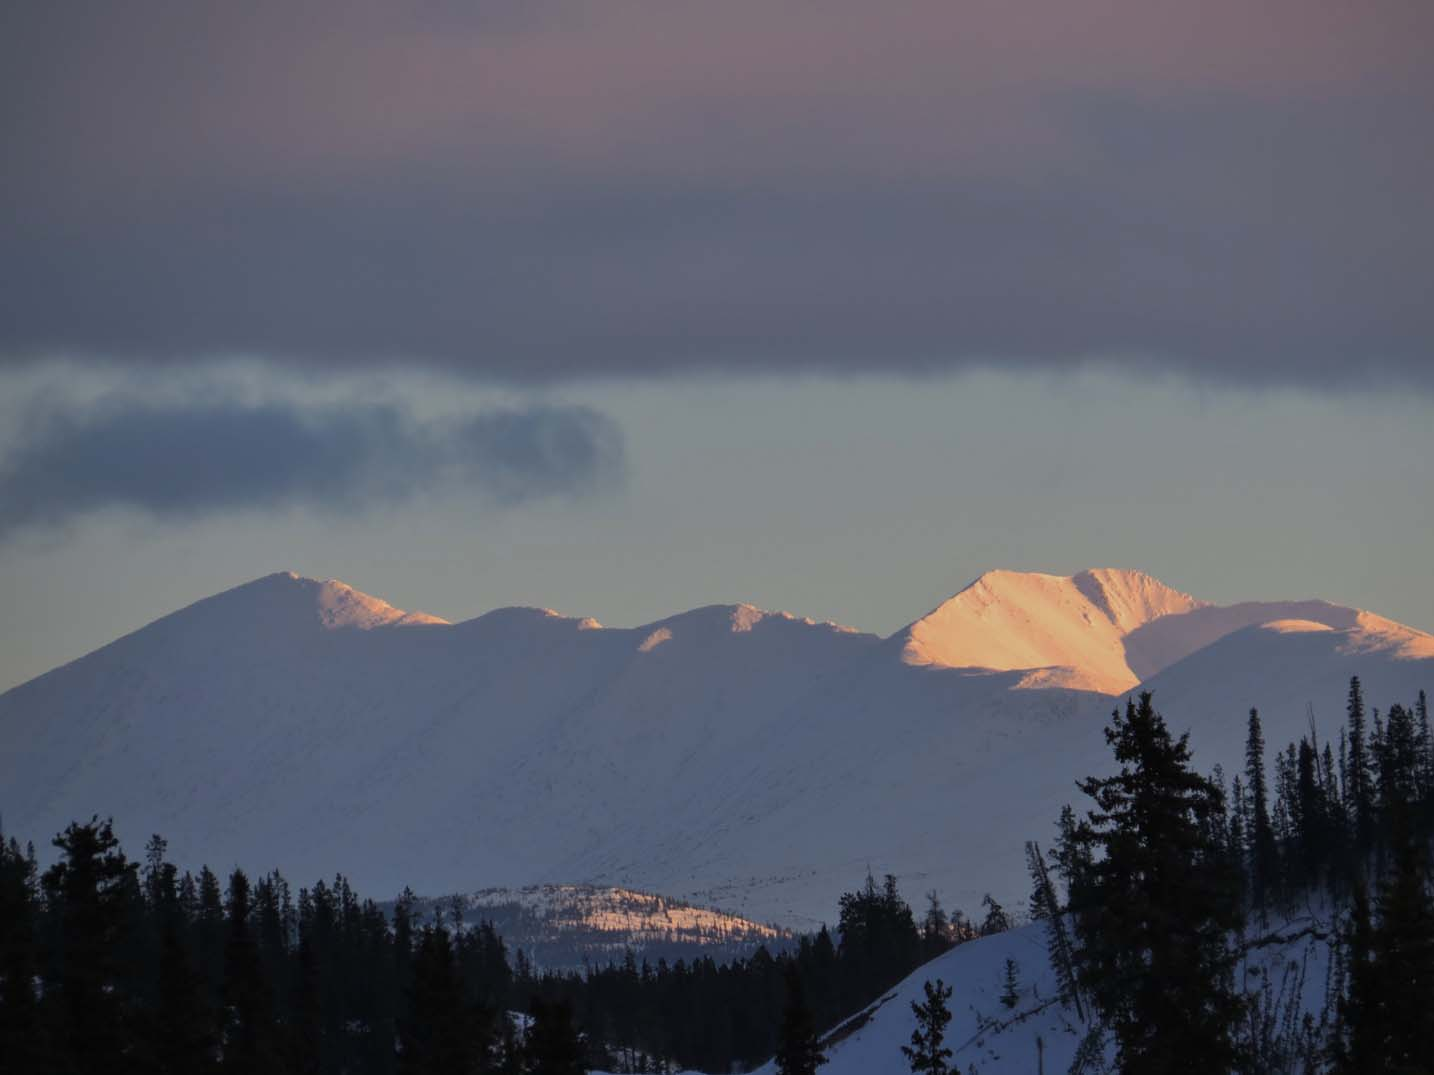 Winter sunset in Whitehorse, Yukon